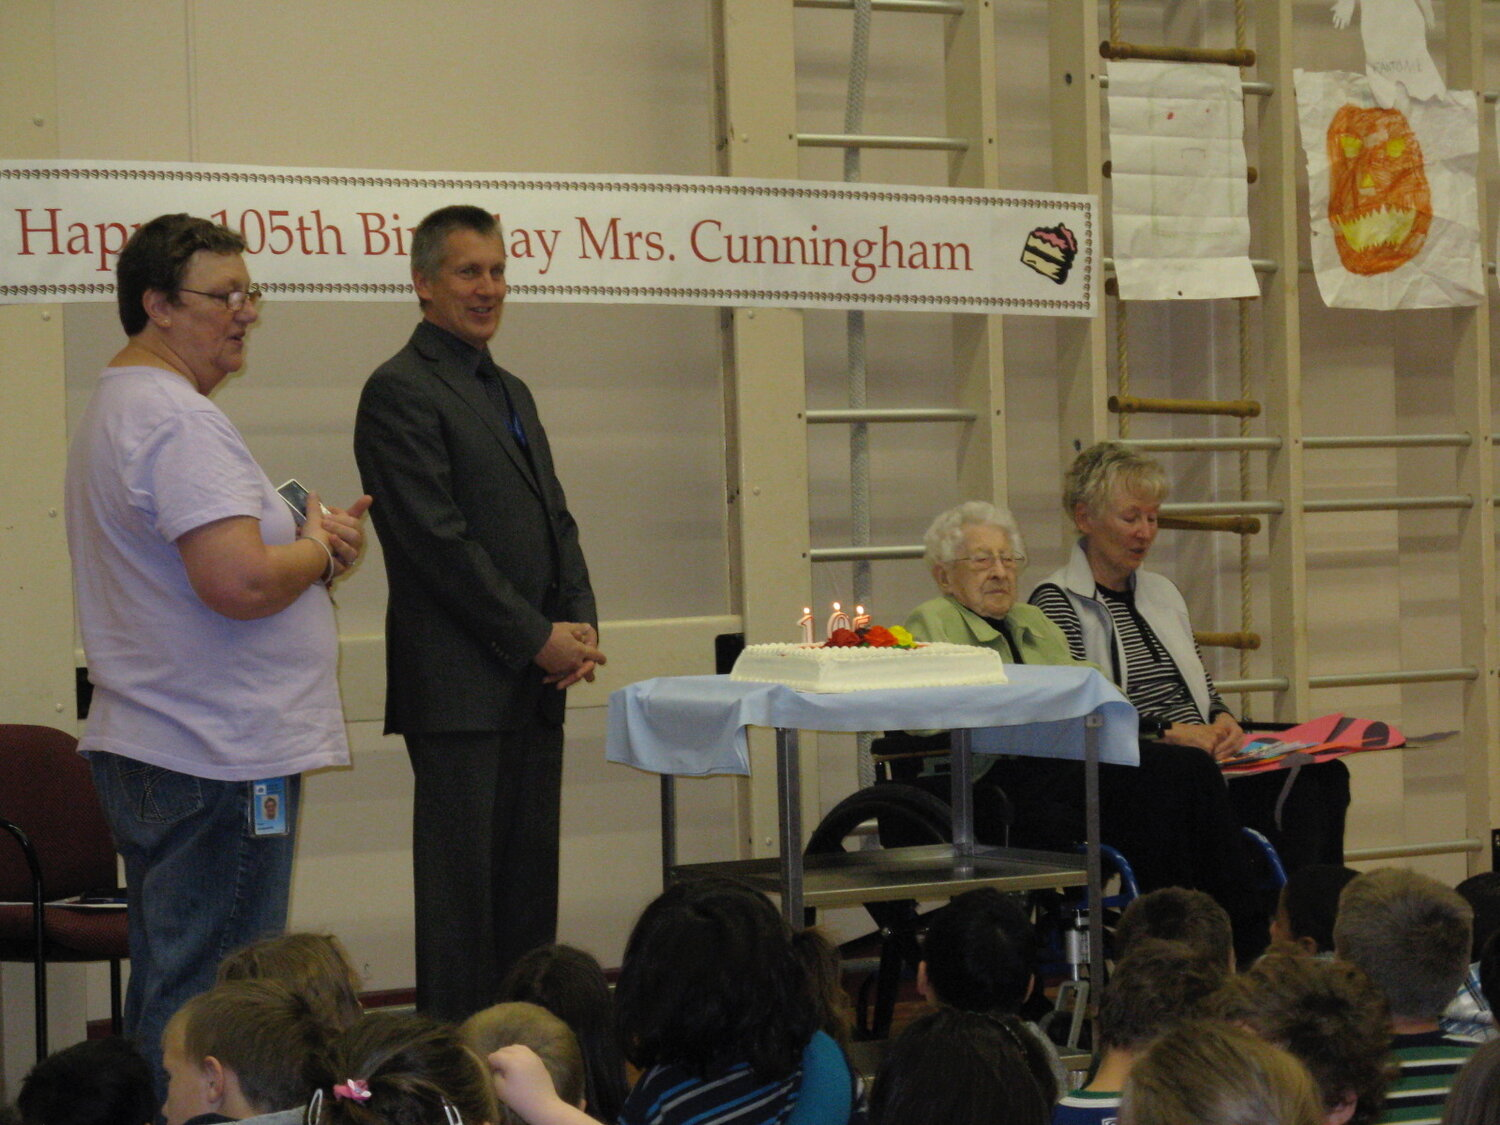 Mrs Cunningham_s 105th Birthday at Buchanan - a.jpg